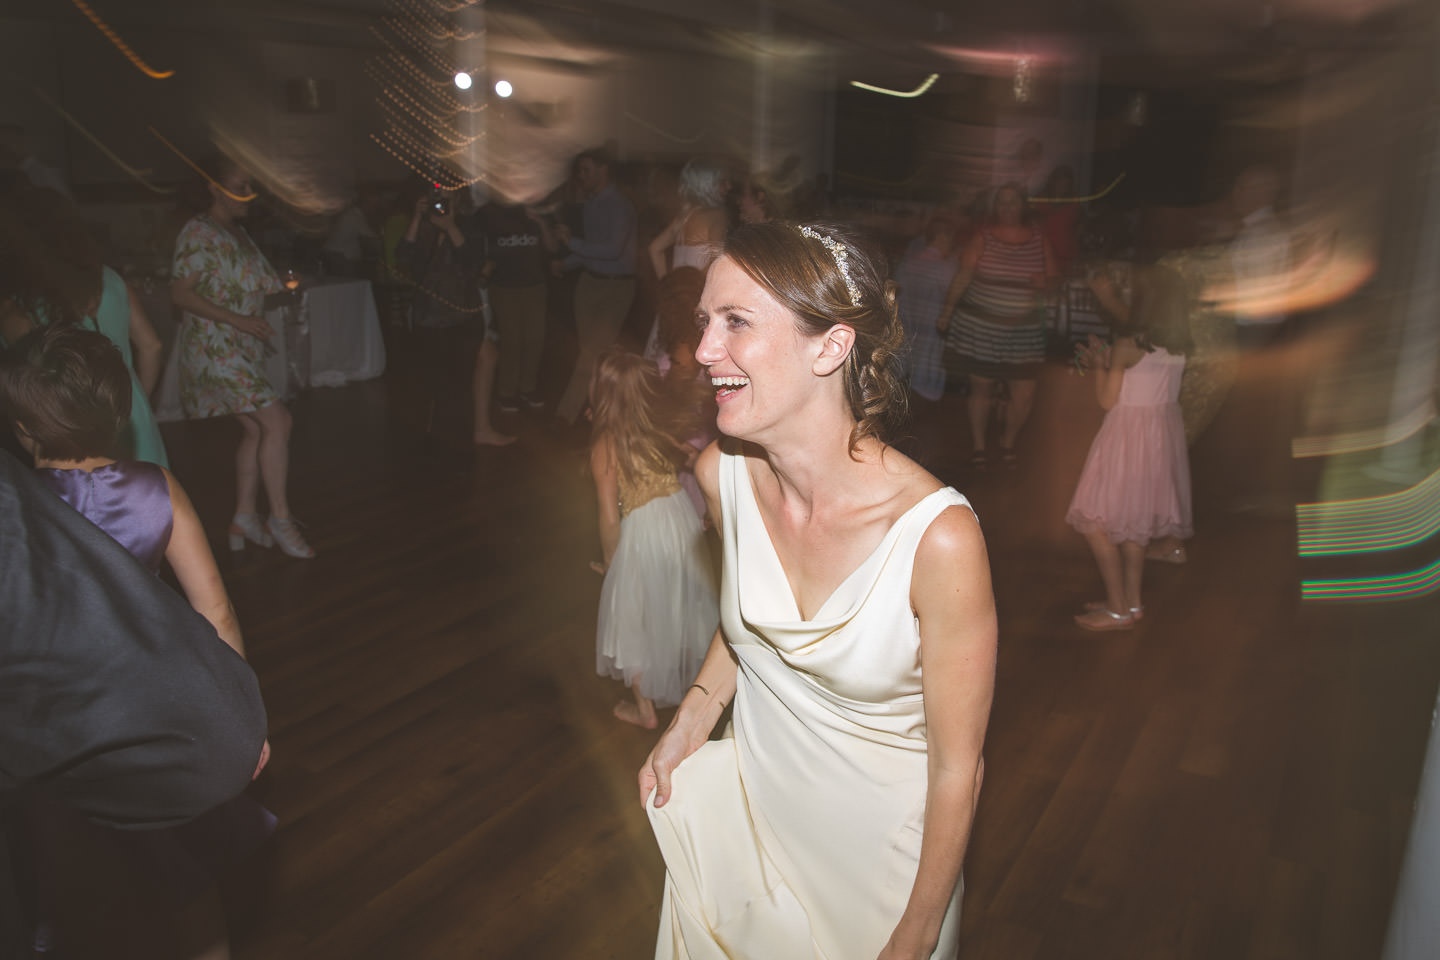 24-Bride-Laughing-While-Dancing